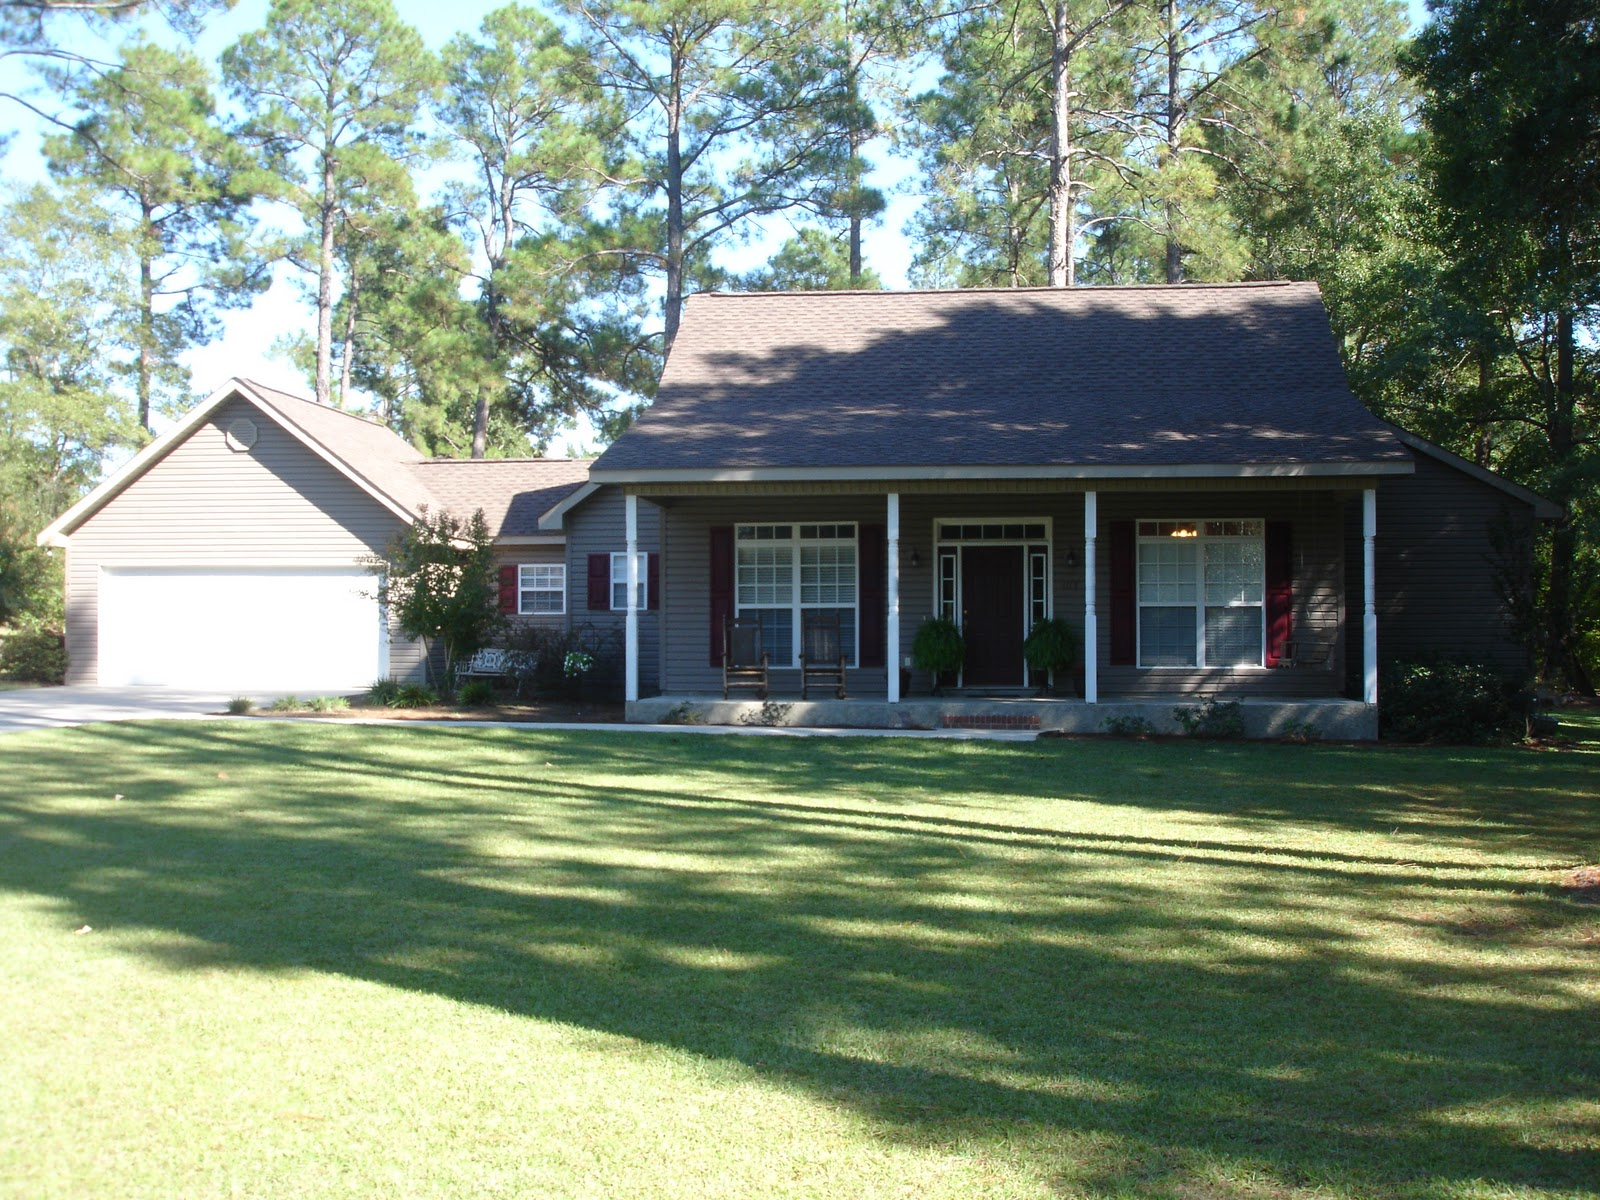 Homes for Sale in Springfield GA